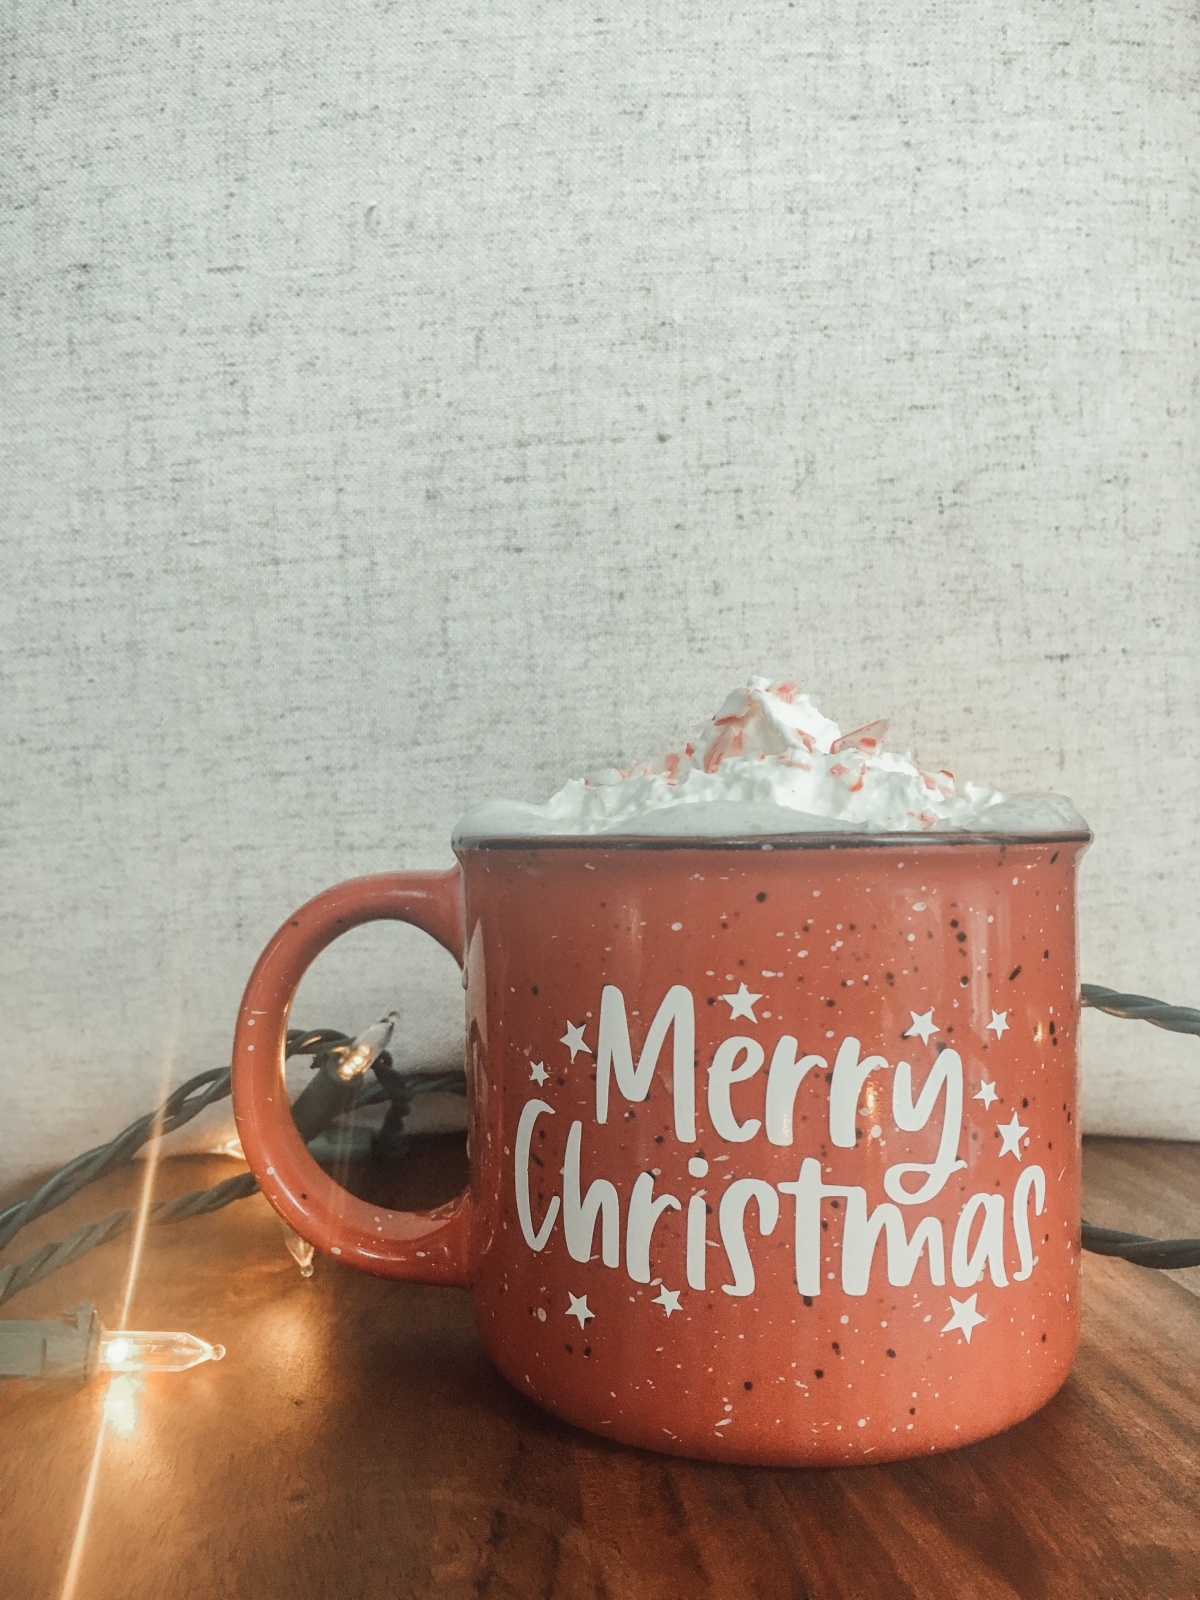 Mug review and my favorite hot cocoa recipe! *cue the Christmas tunes andposts*